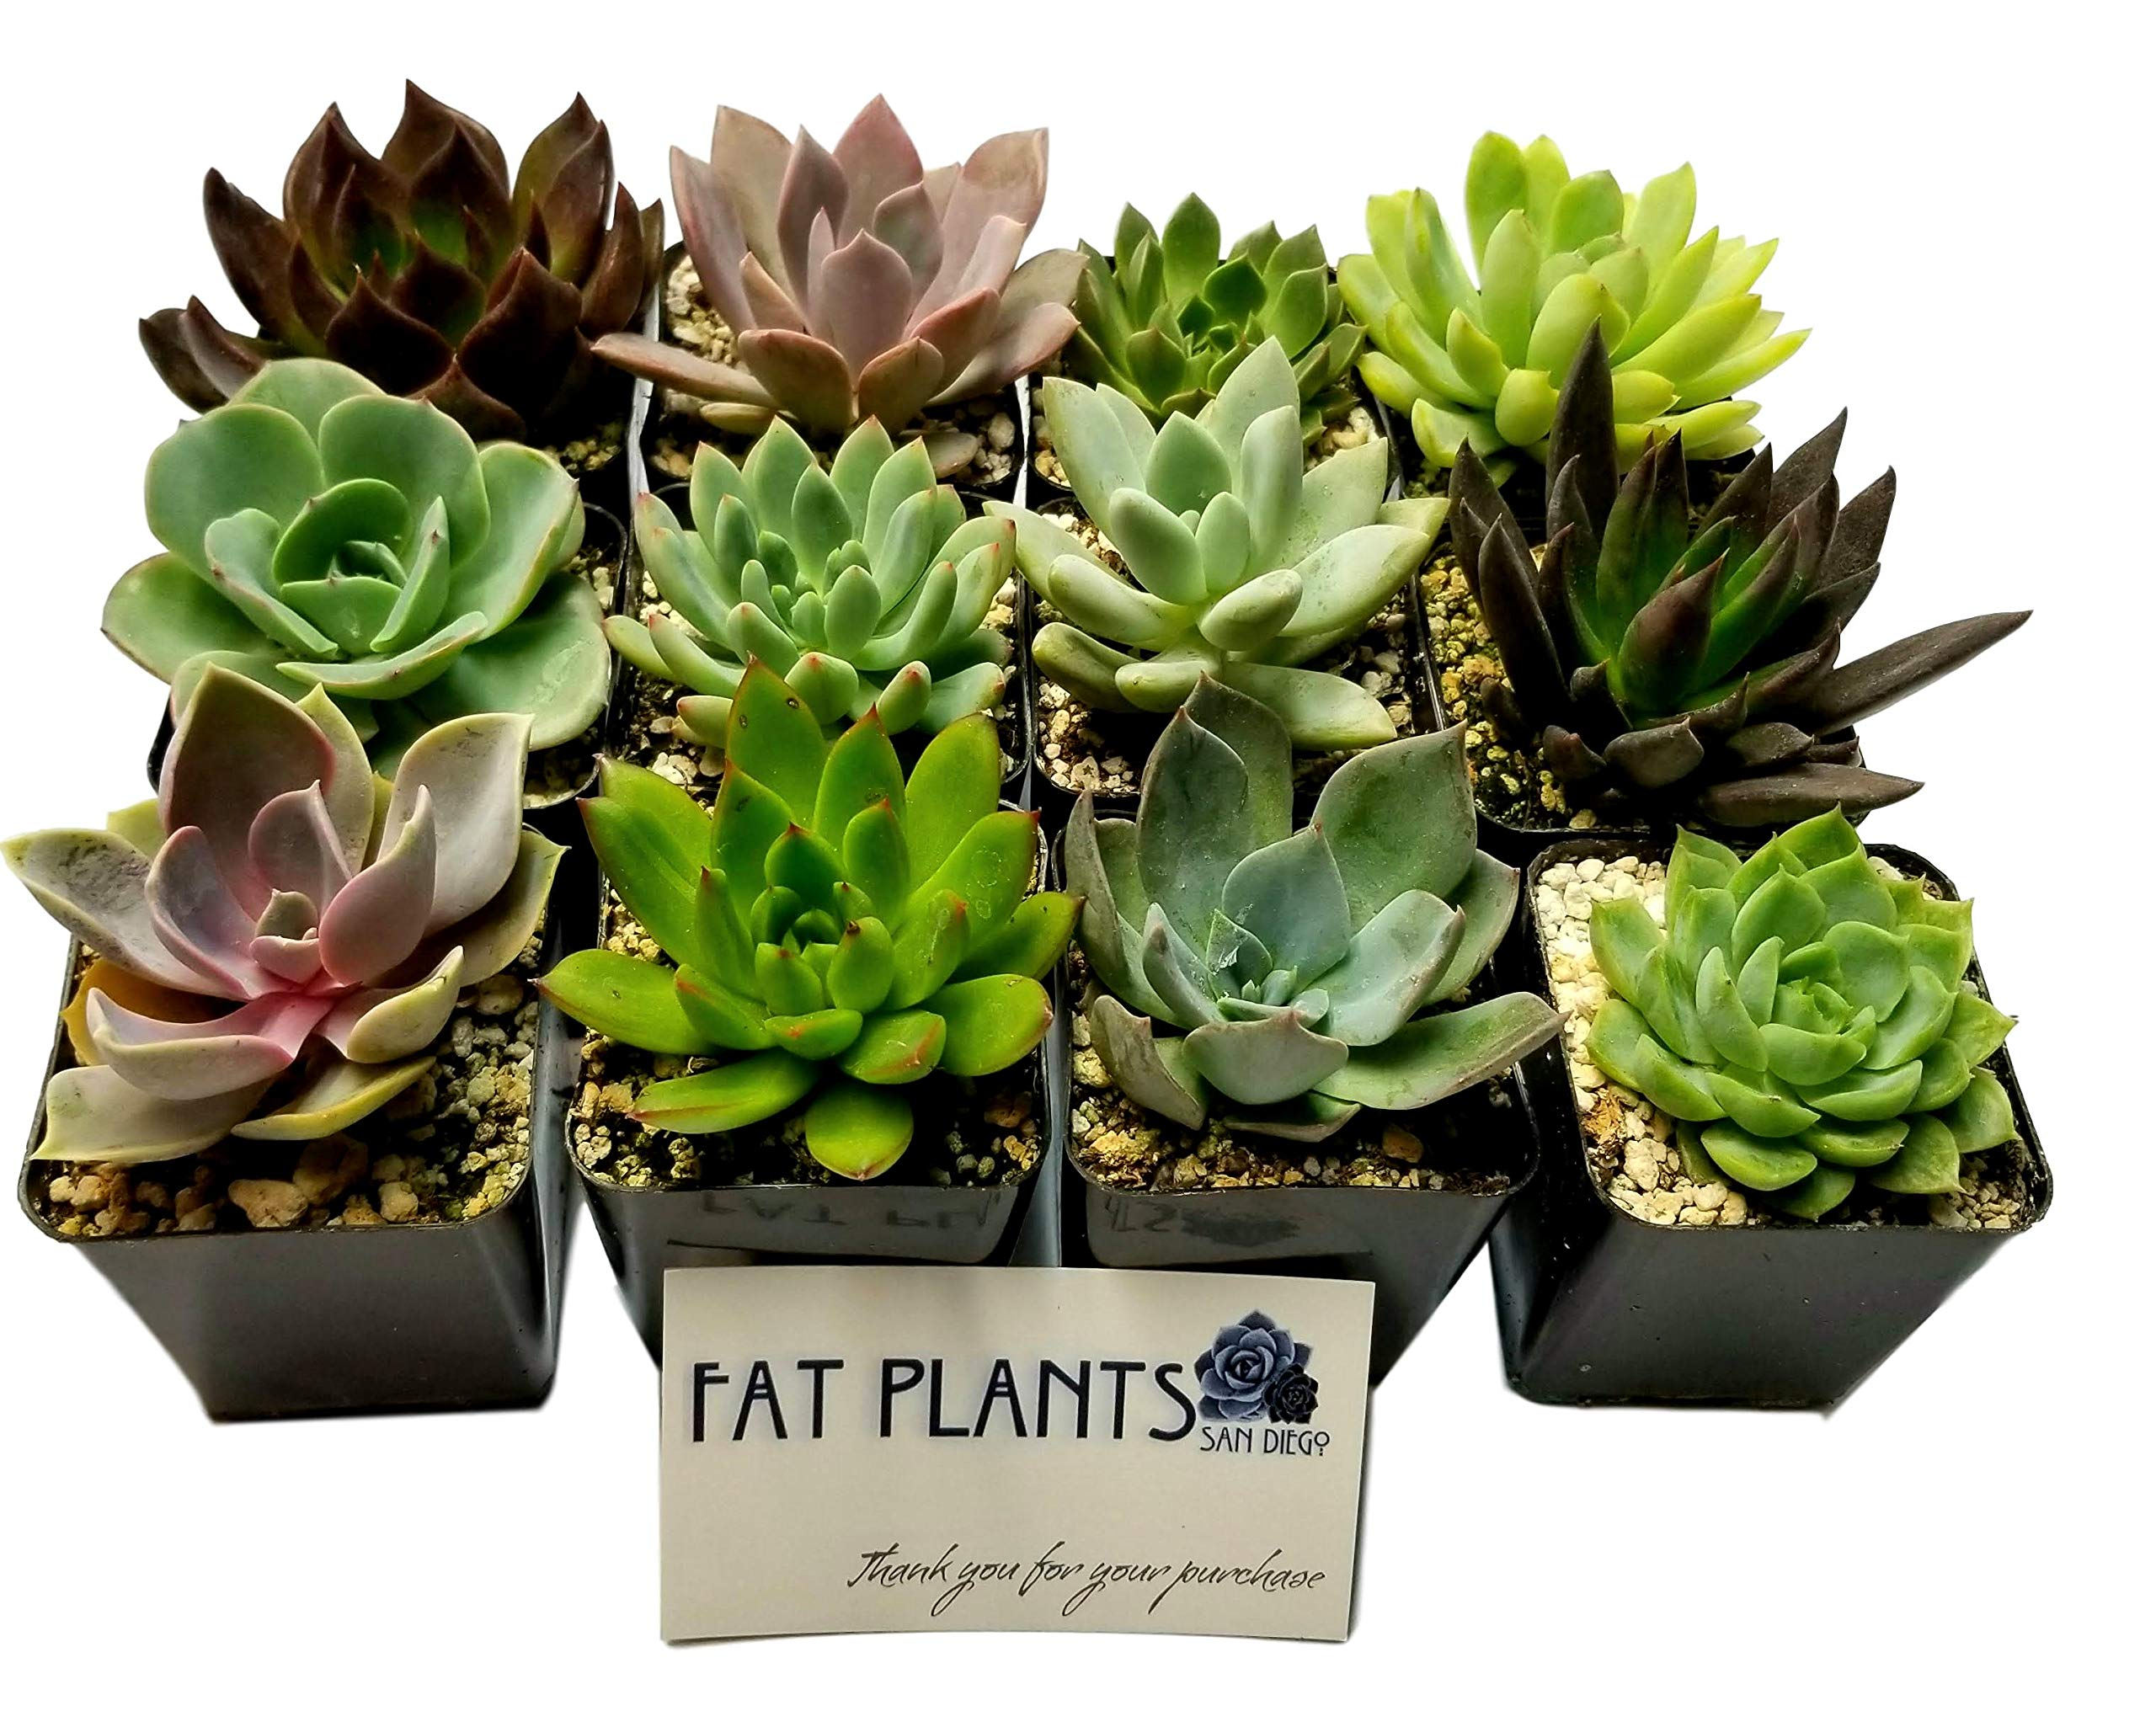 Fat Plants San Diego 2.5 Inch Wedding Rosette Succulent Plants (12) by Fat Plants San Diego (Image #1)